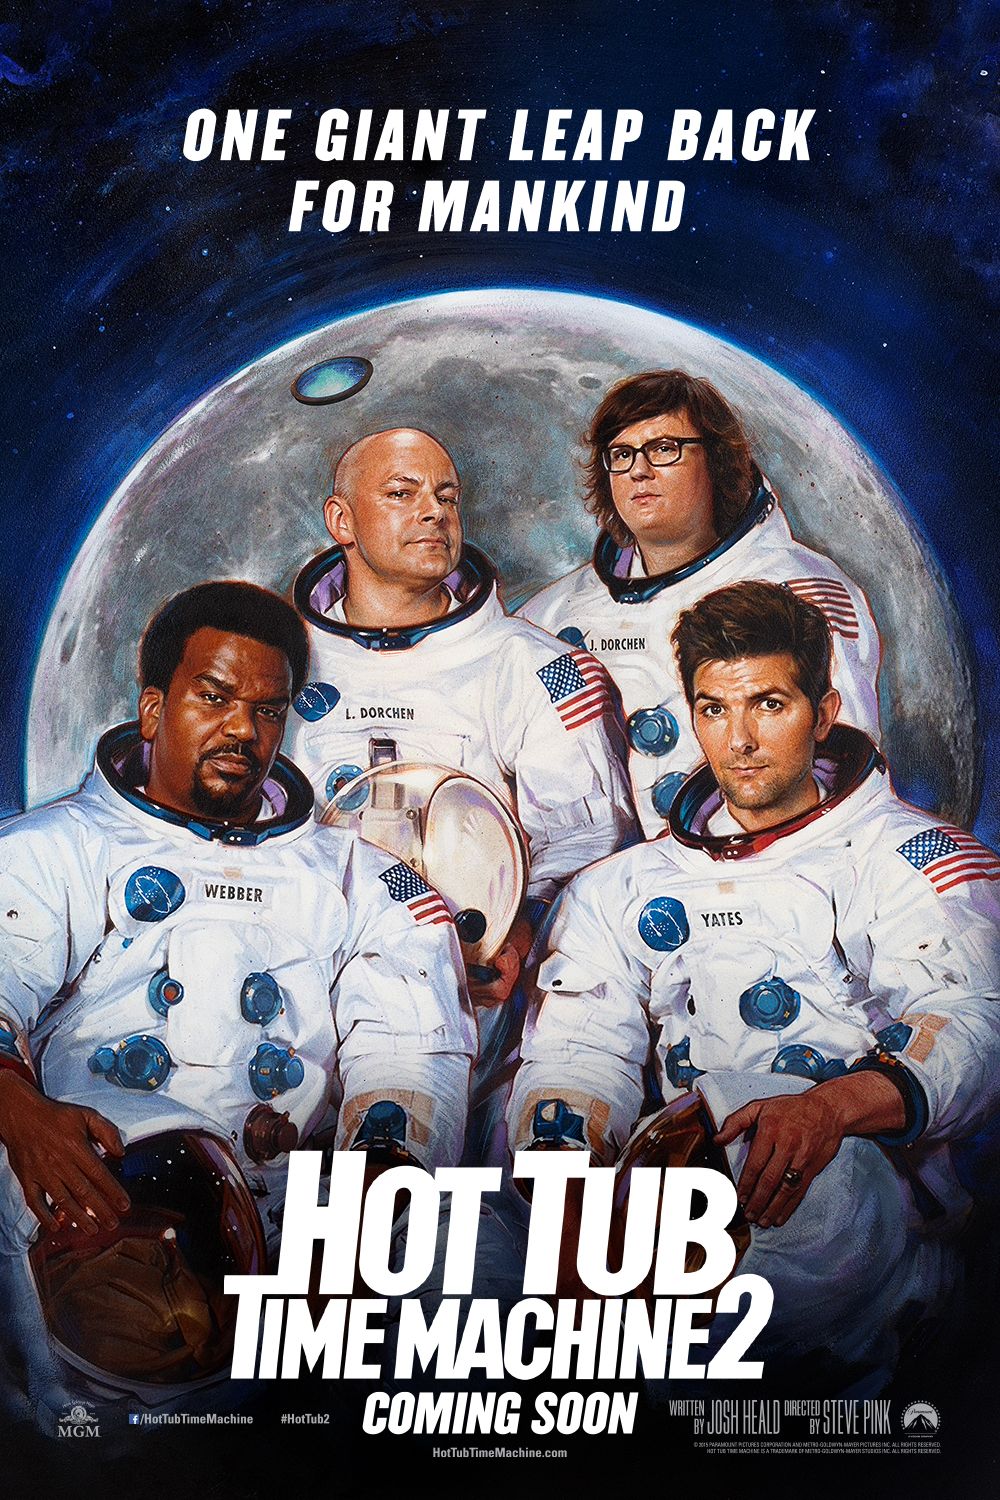 The Hot Tub Time Machine Space poster